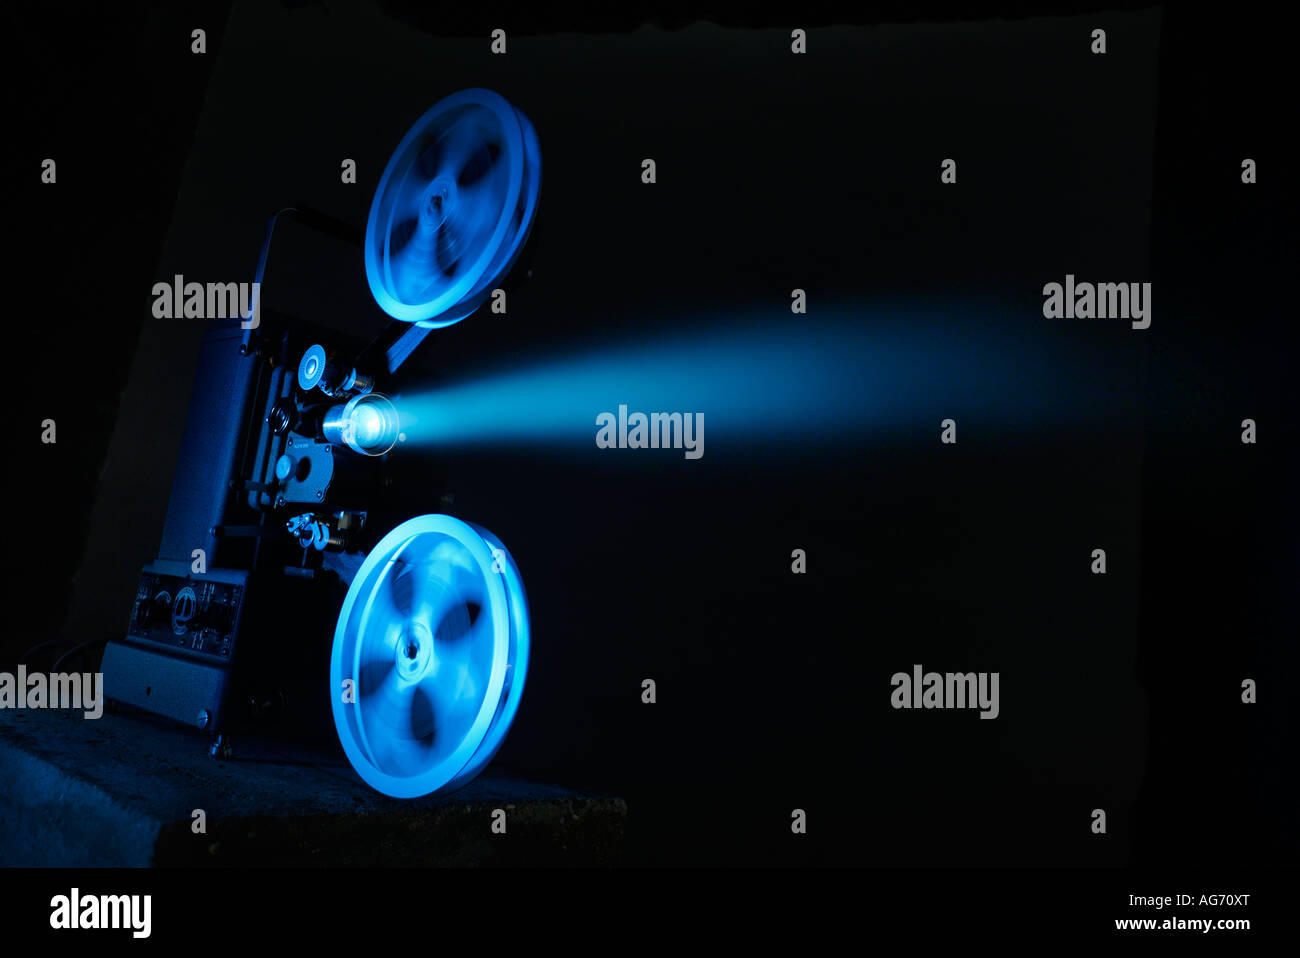 projector - Stock Image